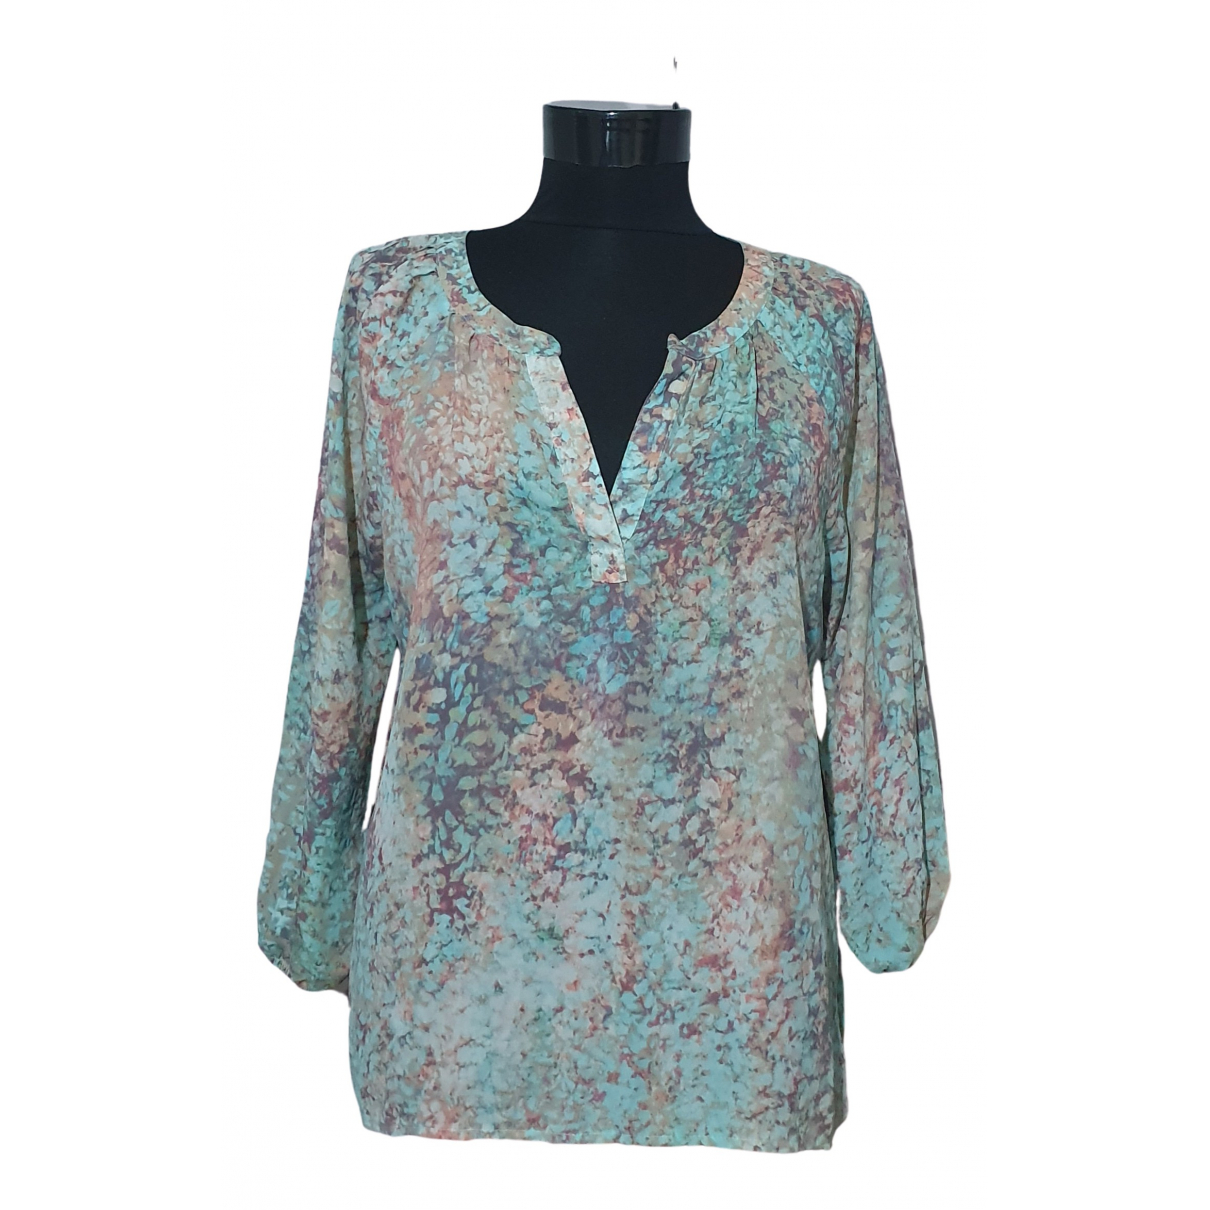 Cynthia Rowley - Top   pour femme - multicolore